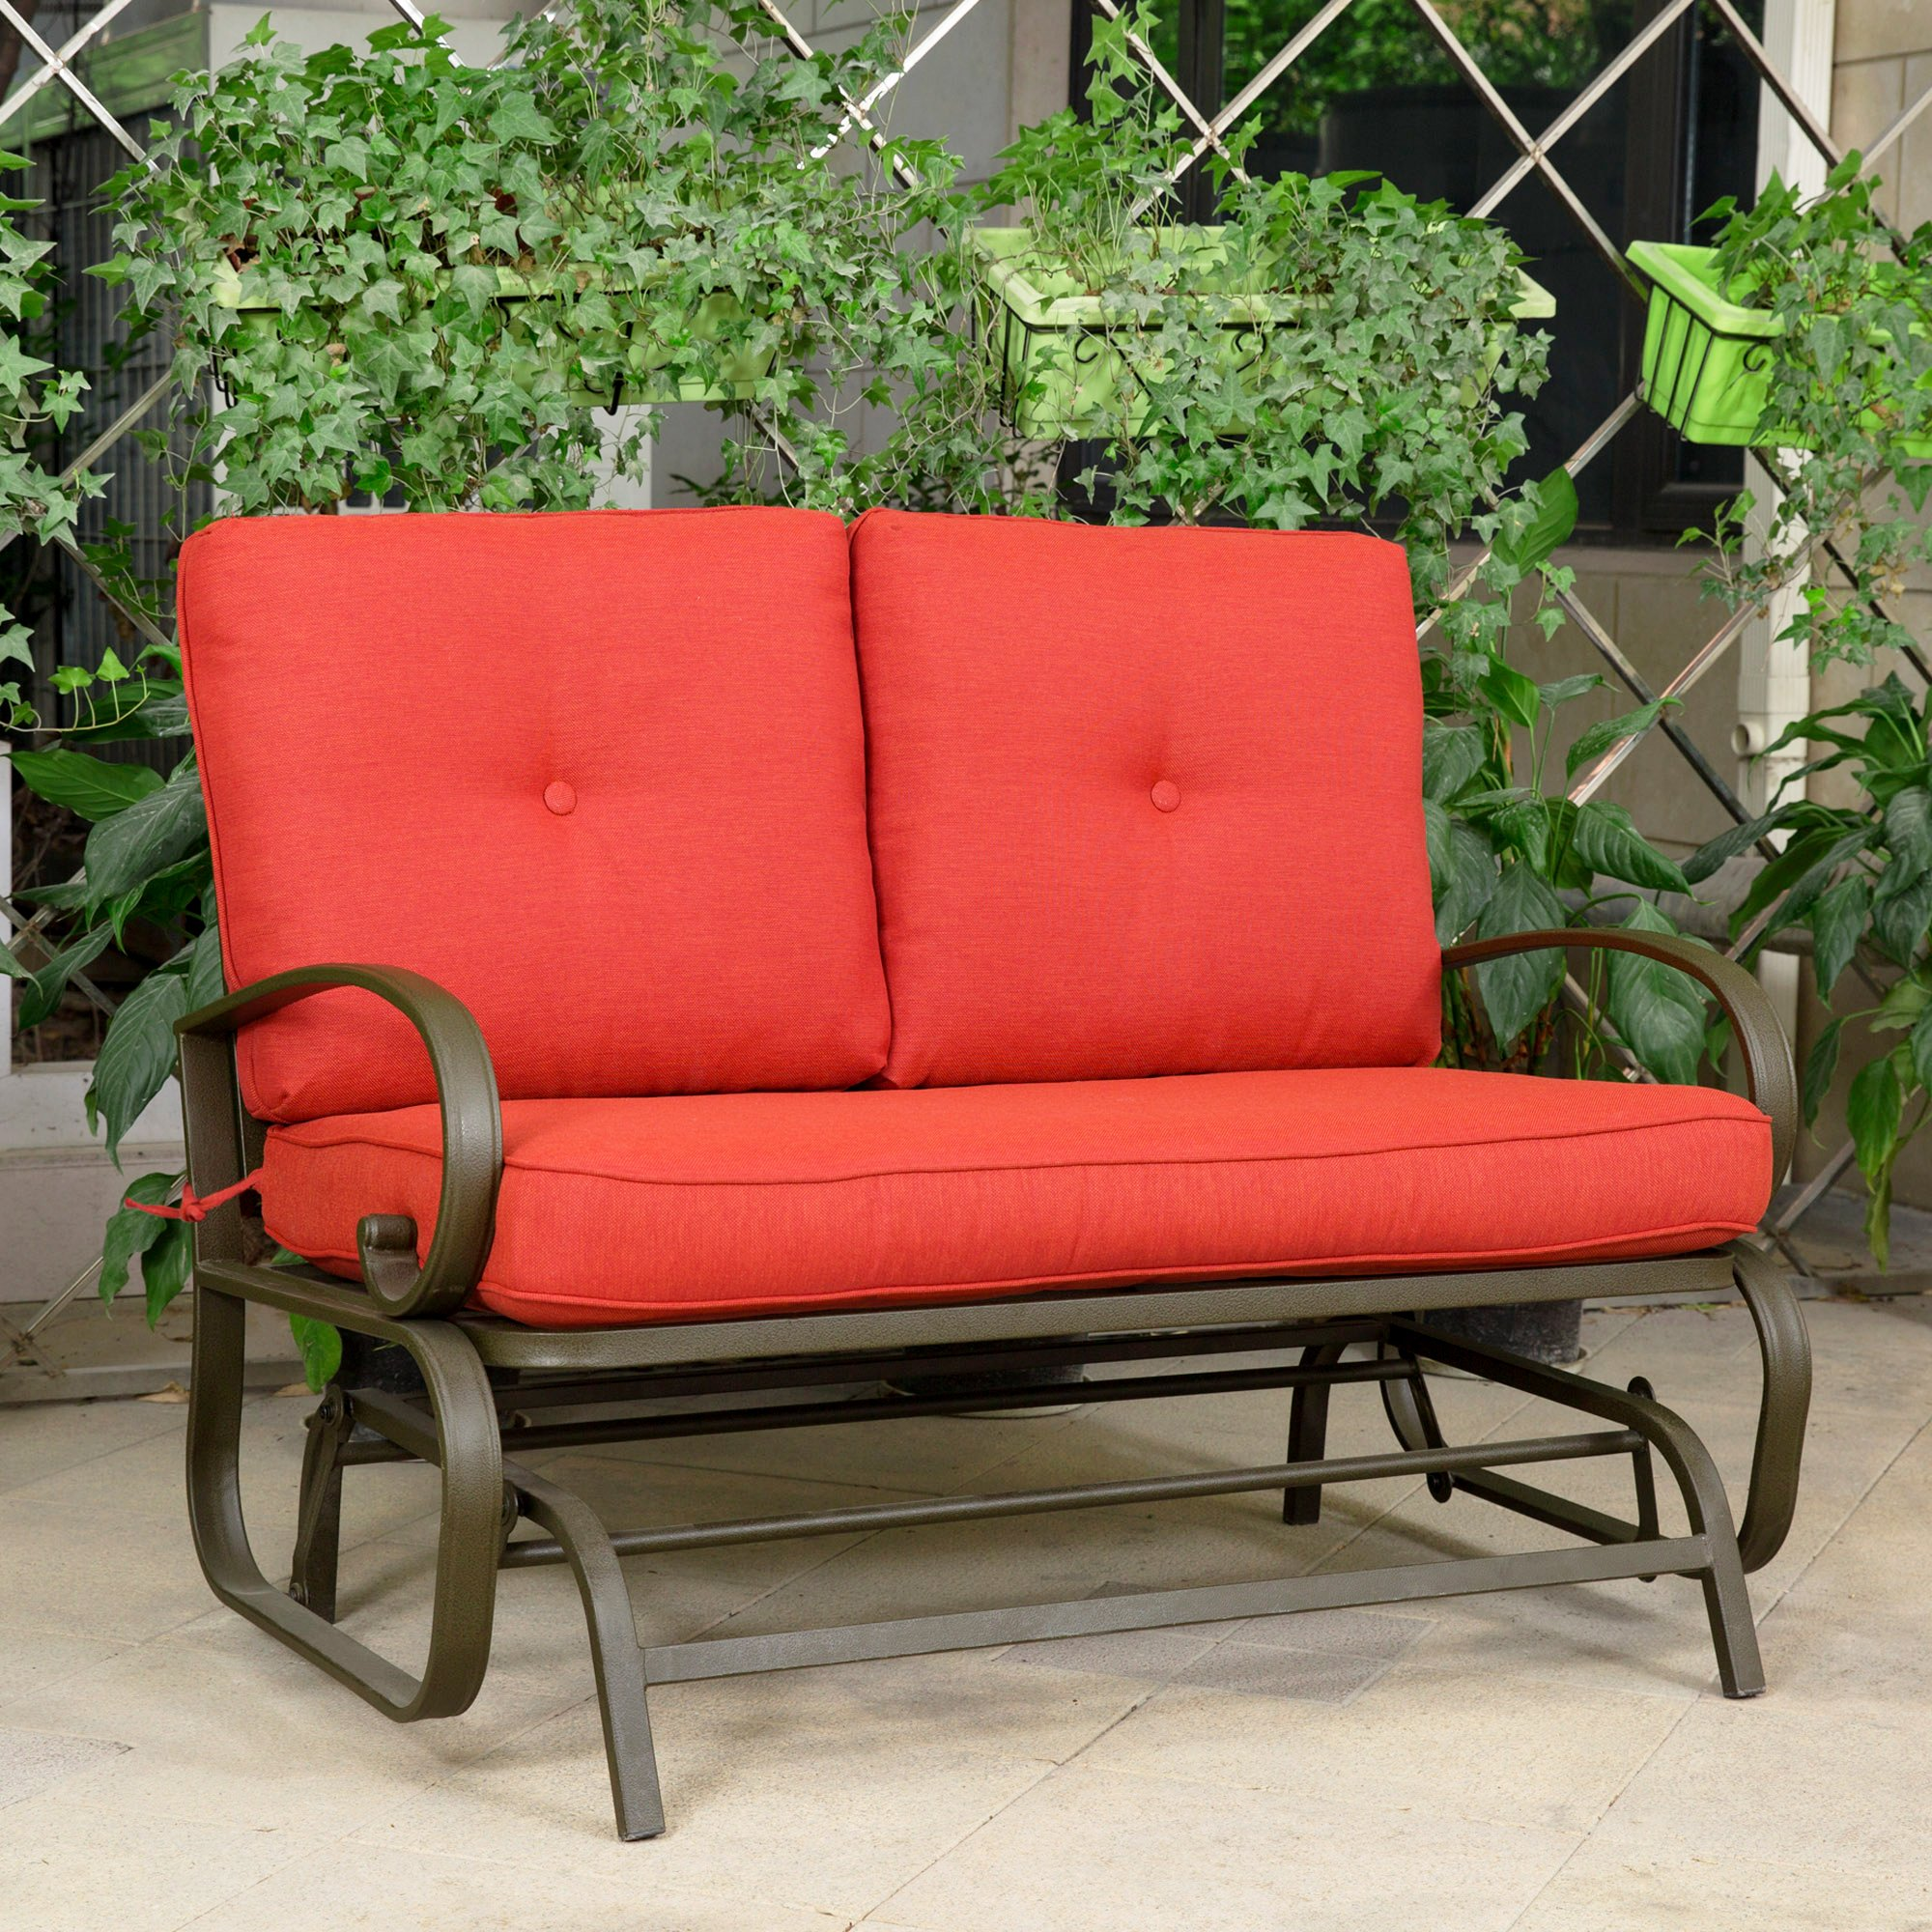 Cloud Mountain Patio Glider Bench Outdoor Cushioned 2 Person Swing Loveseat Rocking Seating Patio Swing Rocker Lounge Glider Chair, Brick Red